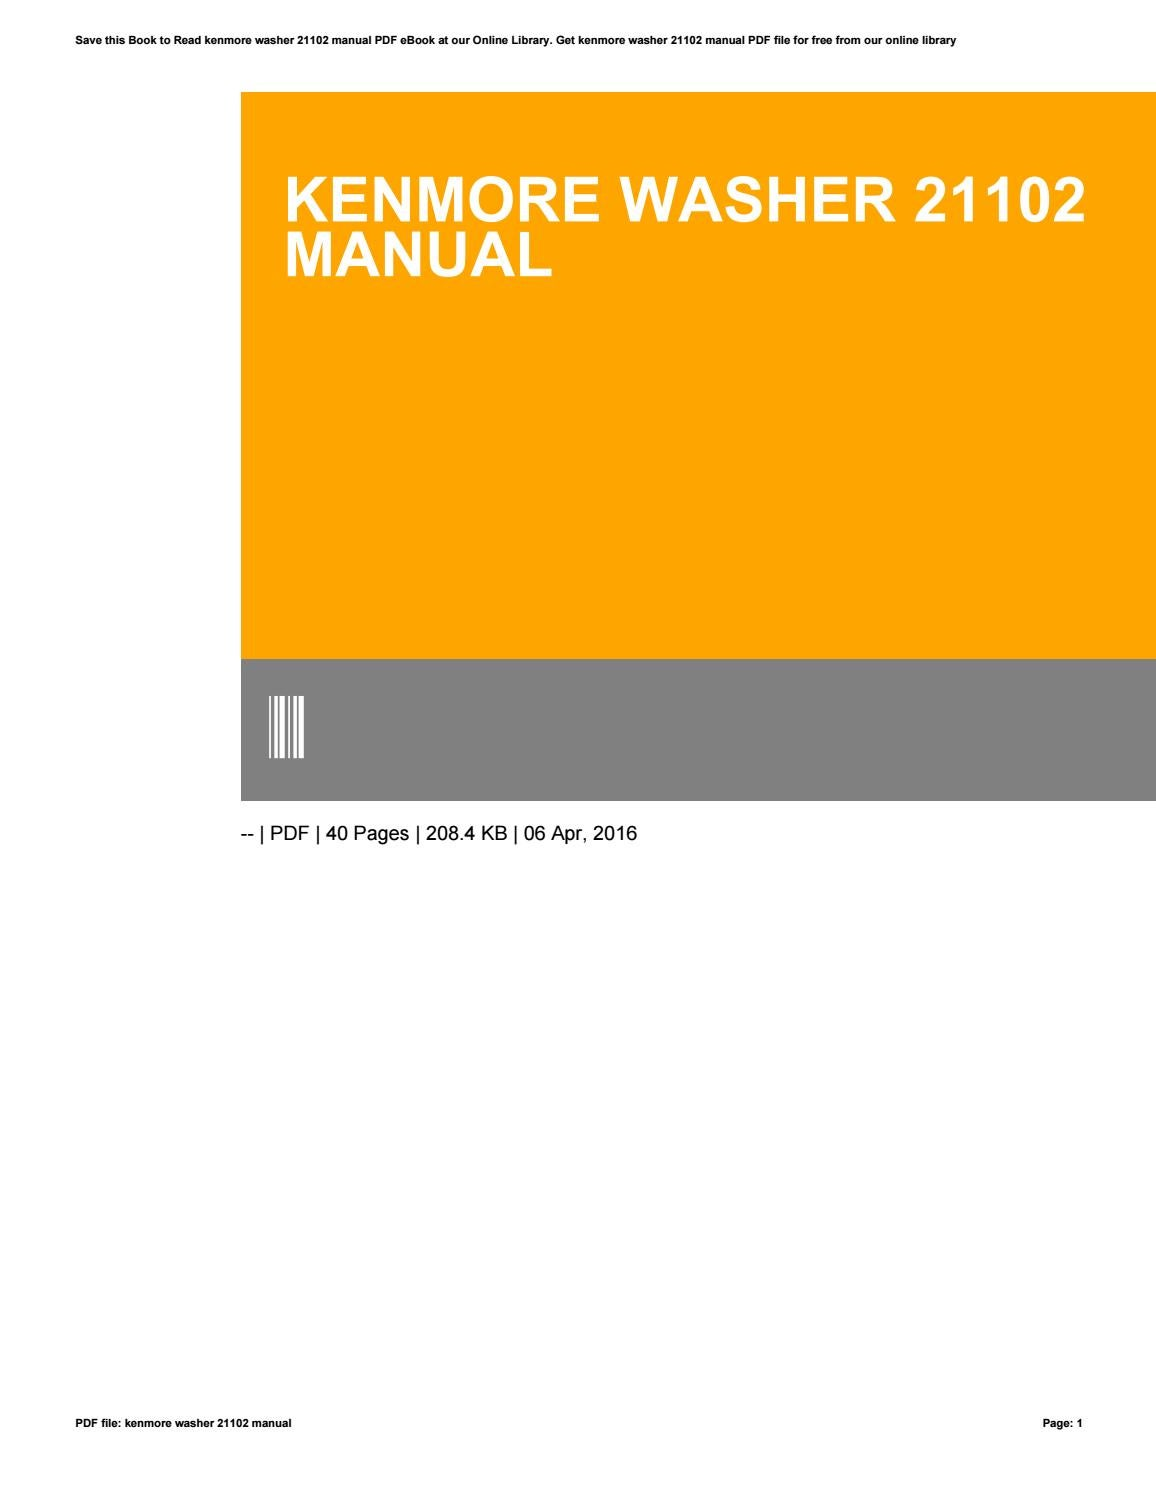 kenmore washer owners manual ebook